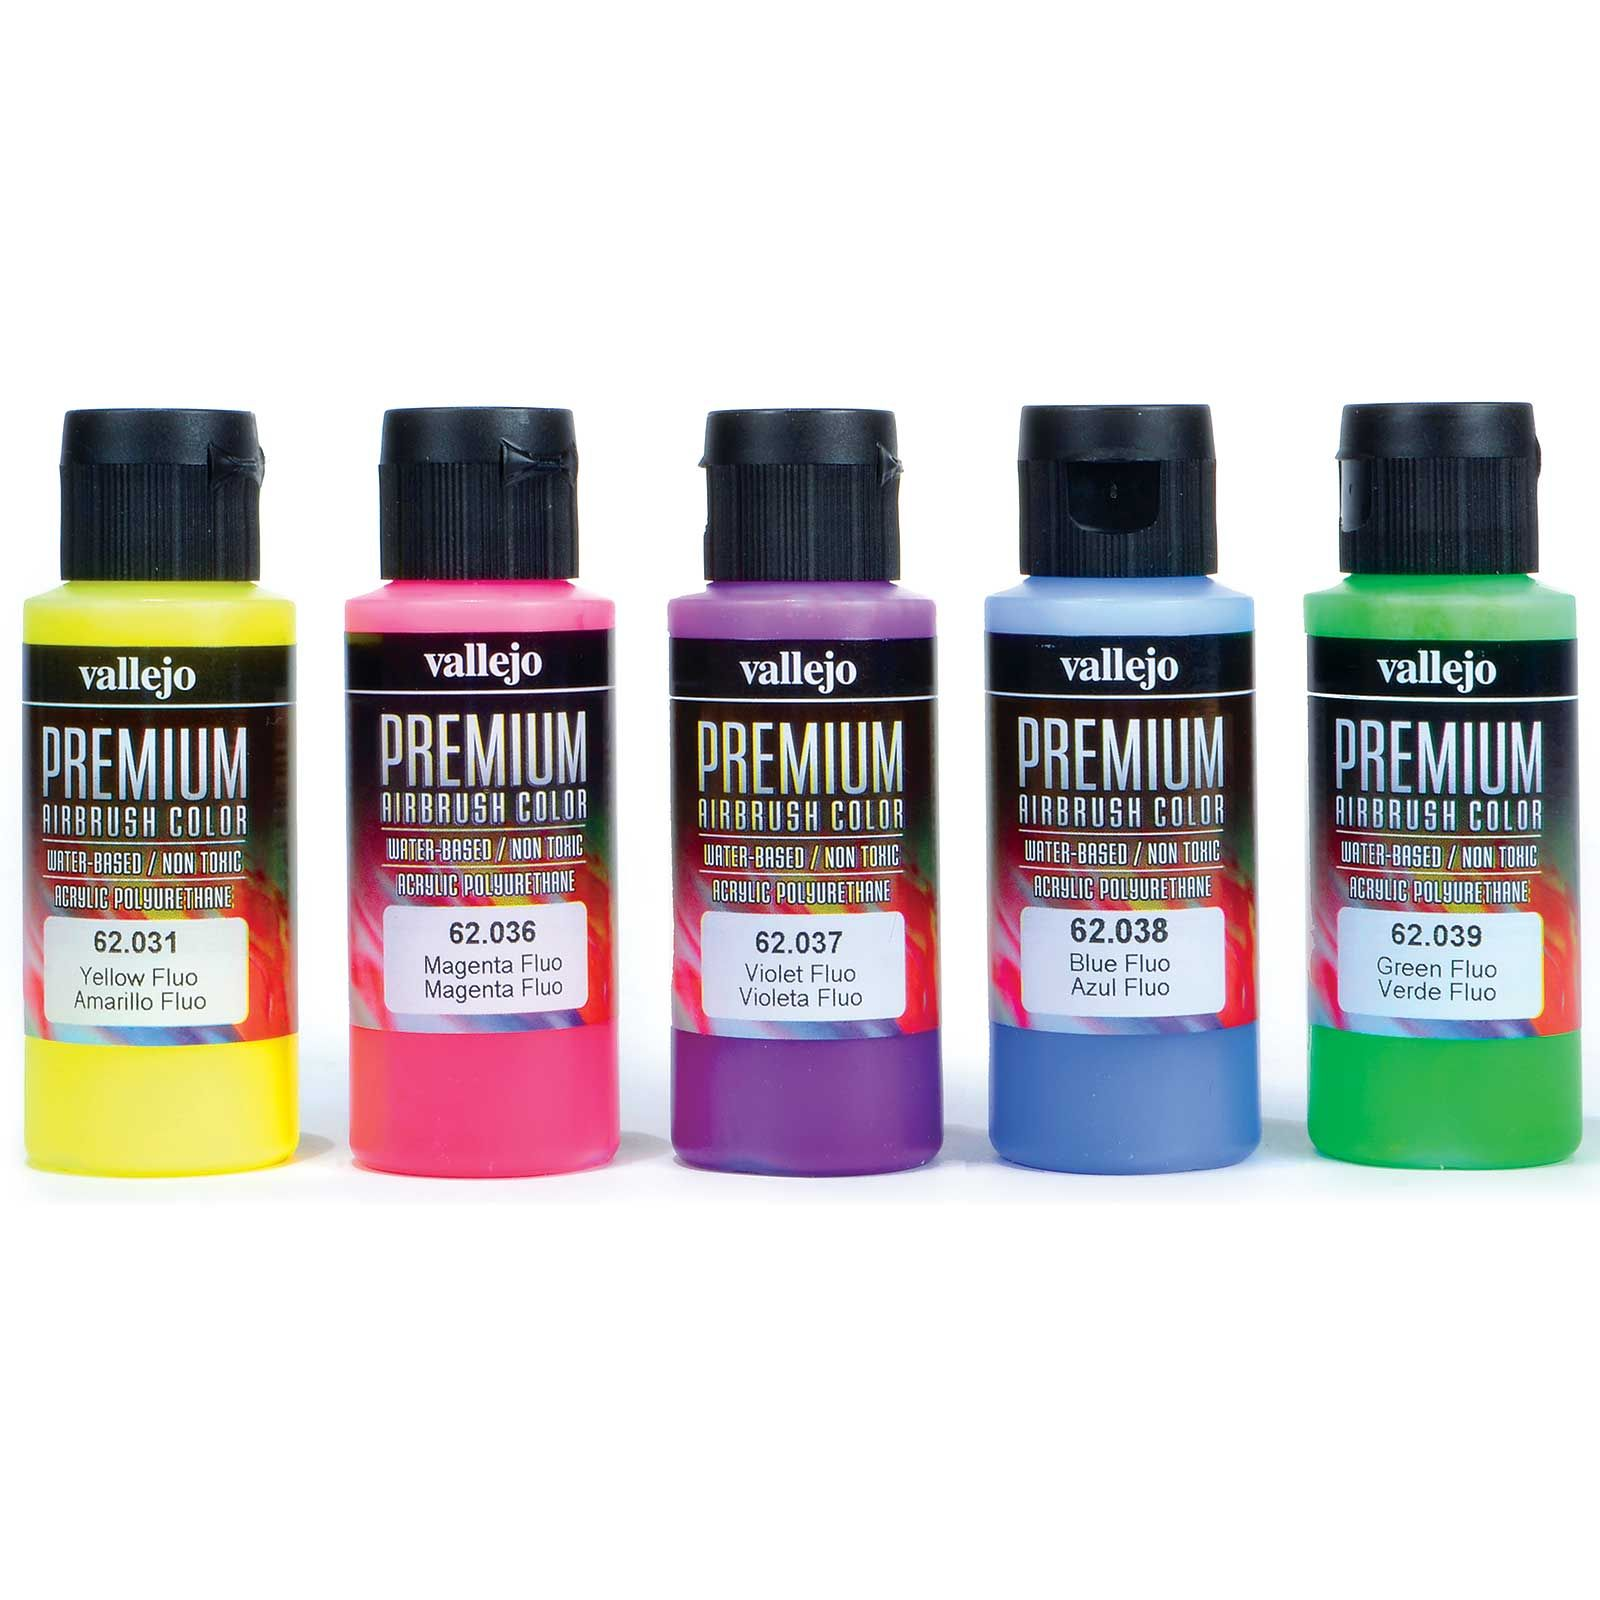 Acrylicos Vallejo Fluorescent Colors Premium Model Paint Set 2 Fl Oz Bottles 5 Colors Hobby Lobby Crafts Art And Hobby Best Hobbies For Men